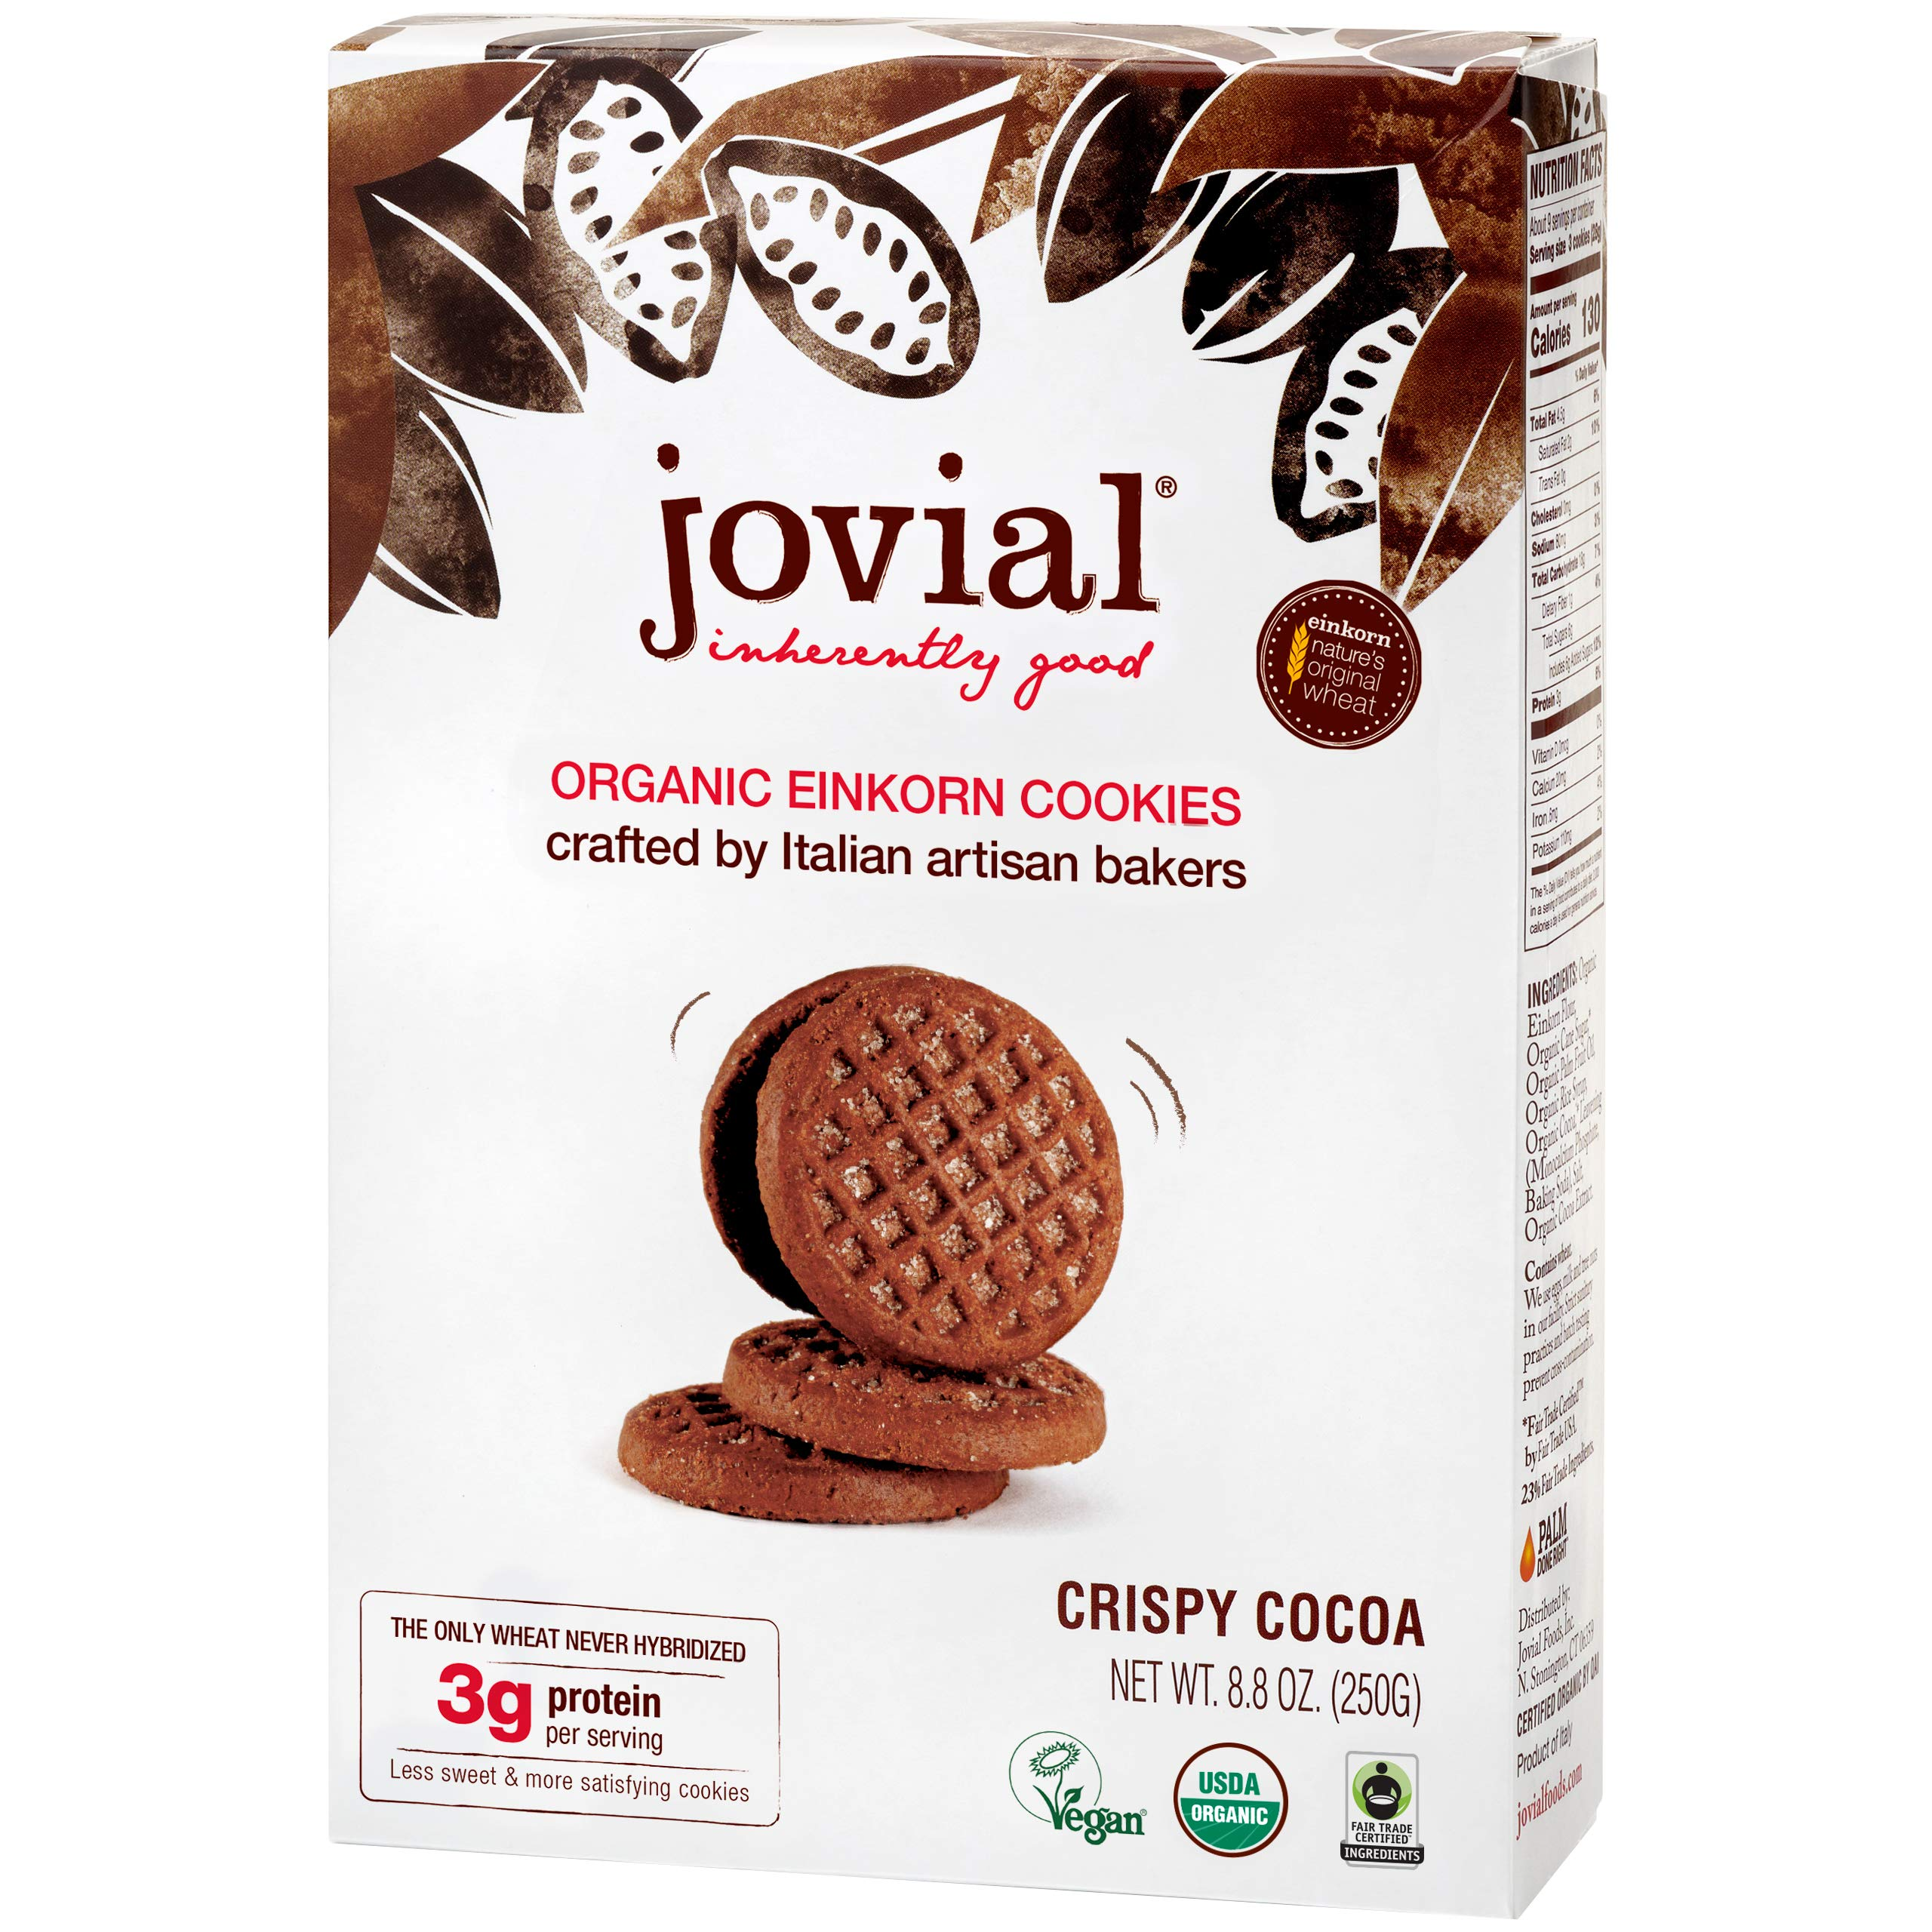 Jovial Einkorn Cookies | Crispy Cocoa Cookies | USDA Certified Organic | High Protein | Fair Trade Certified | All Natural Ingredients | Low Carb | Low Sugar | Palm Done Right | 8.8 oz (2 Pack)